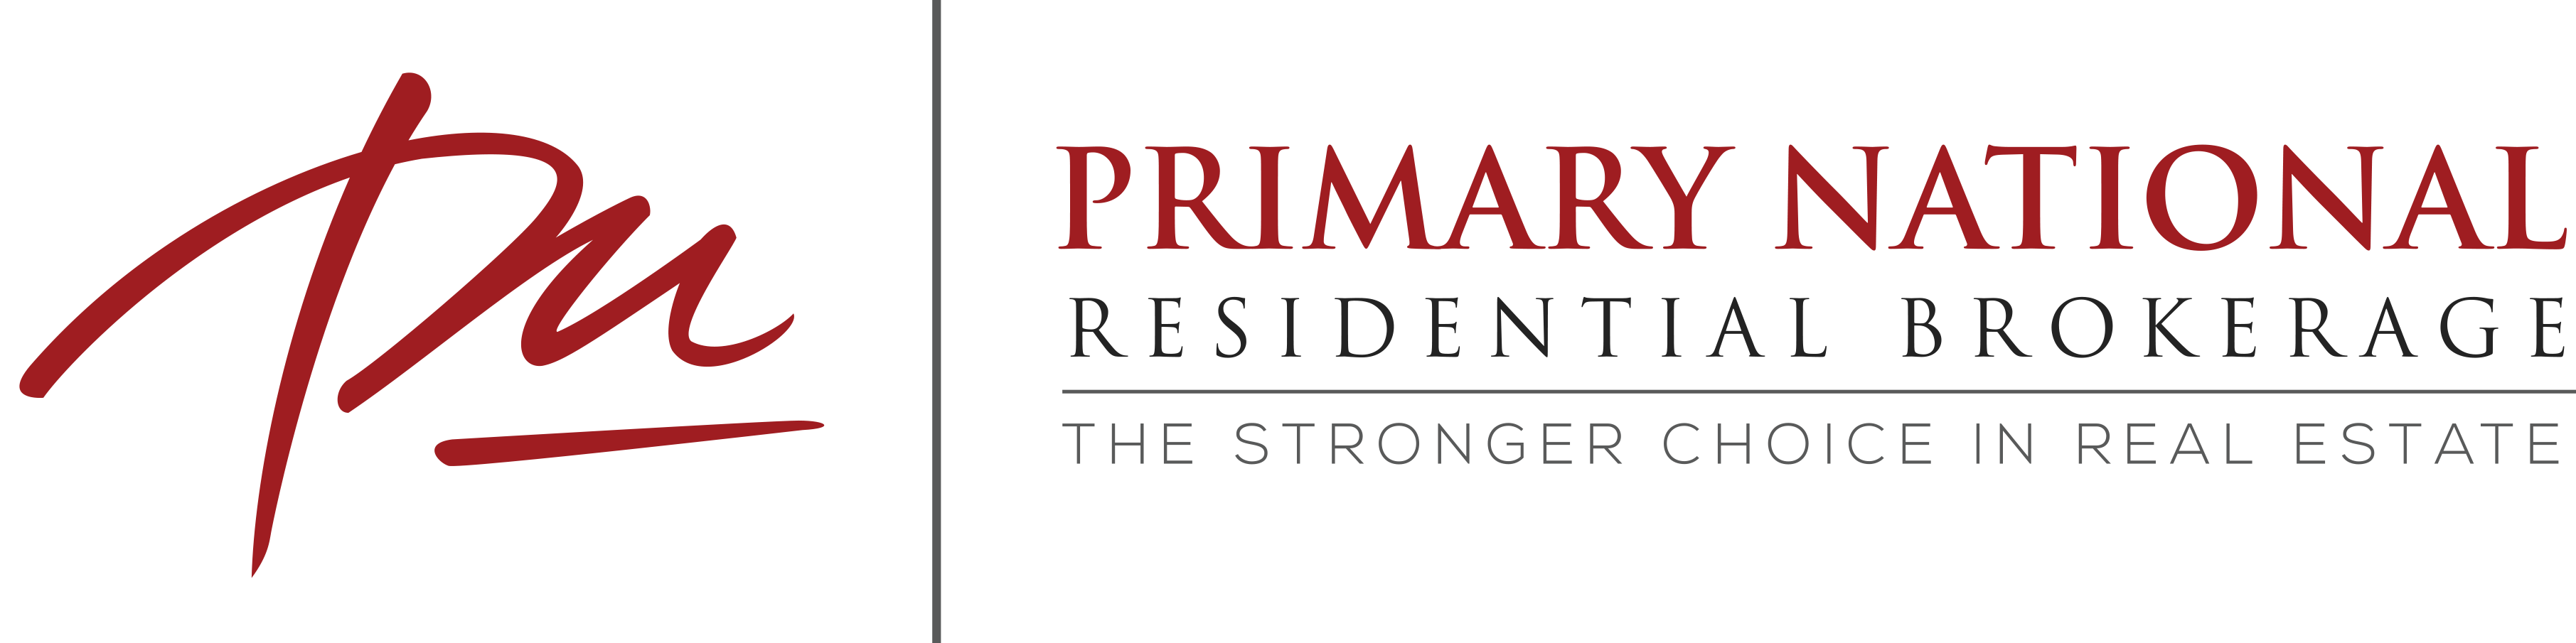 Primary National